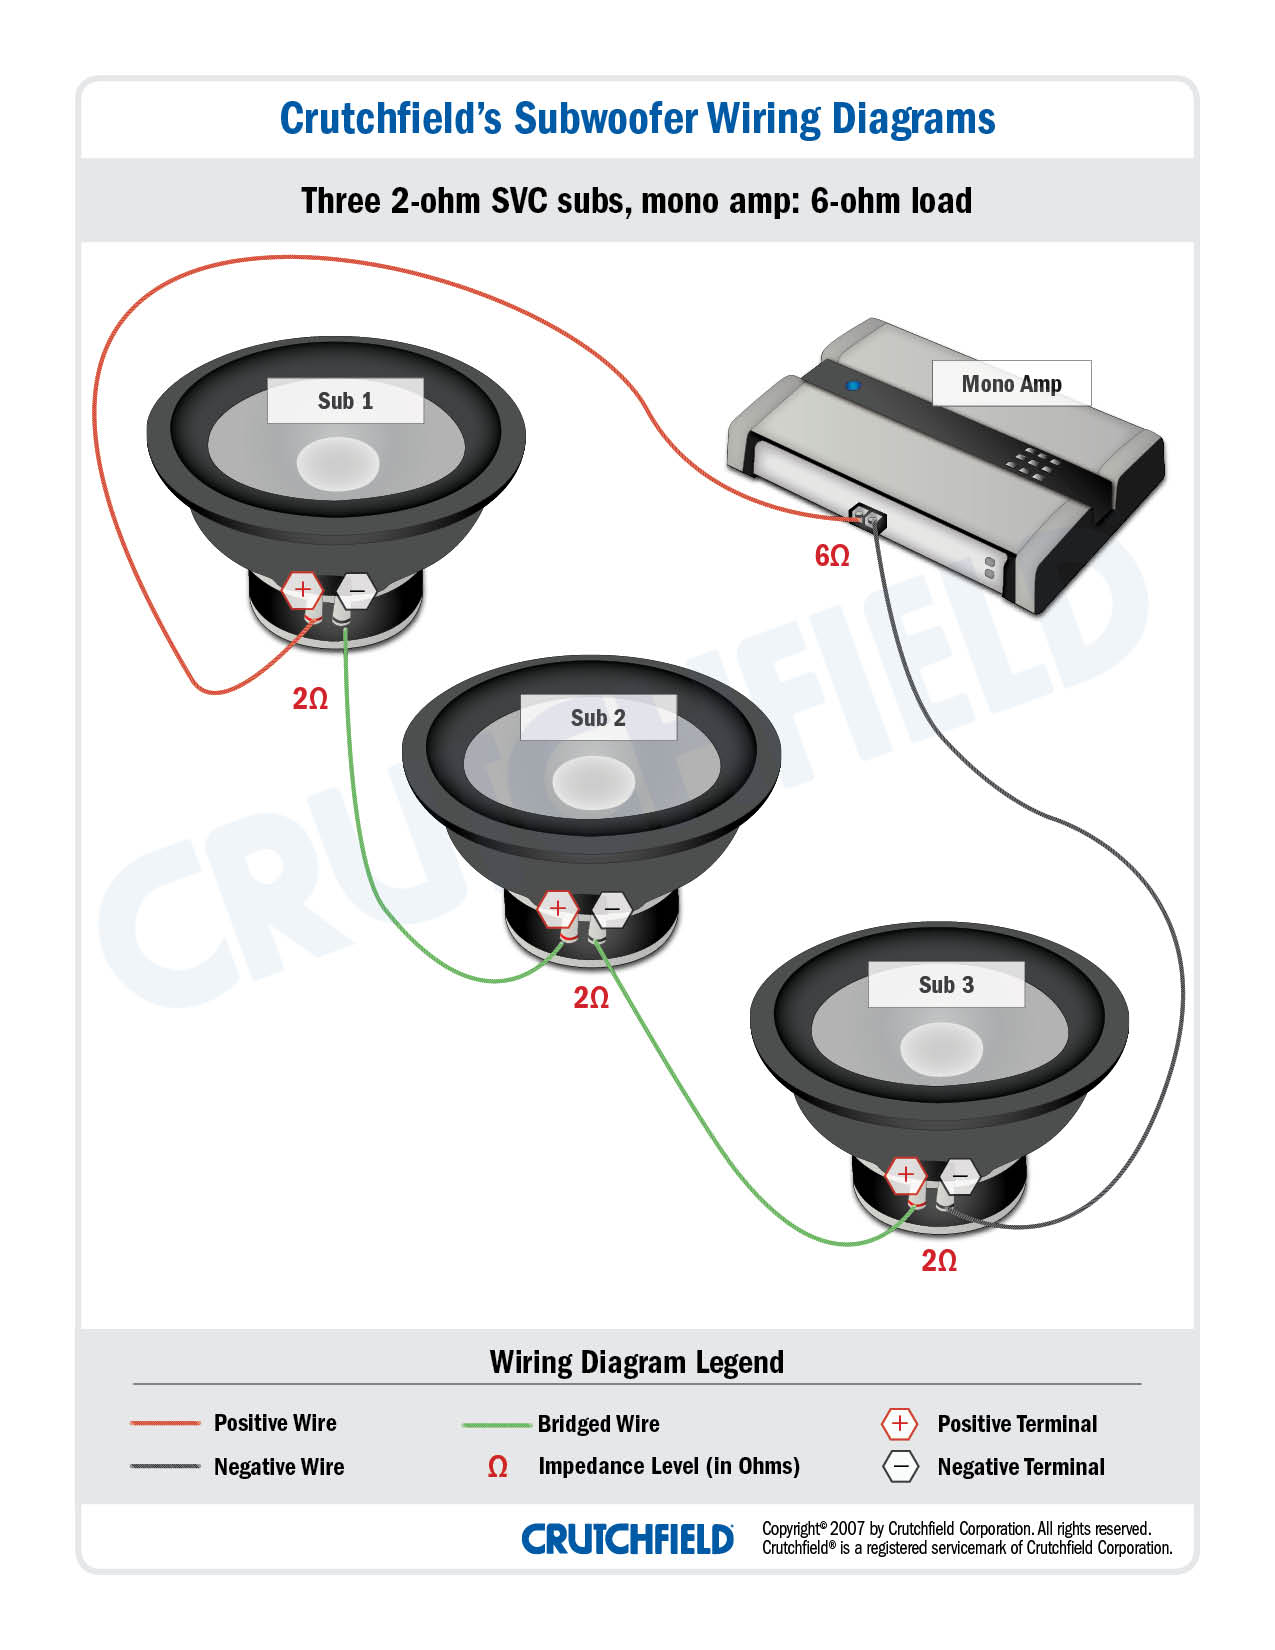 Subwoofer Wiring Diagrams How To Wire Your Subs Automotive 4 In Case On The Diagram Captions Change 2s 4s And 6 A 12